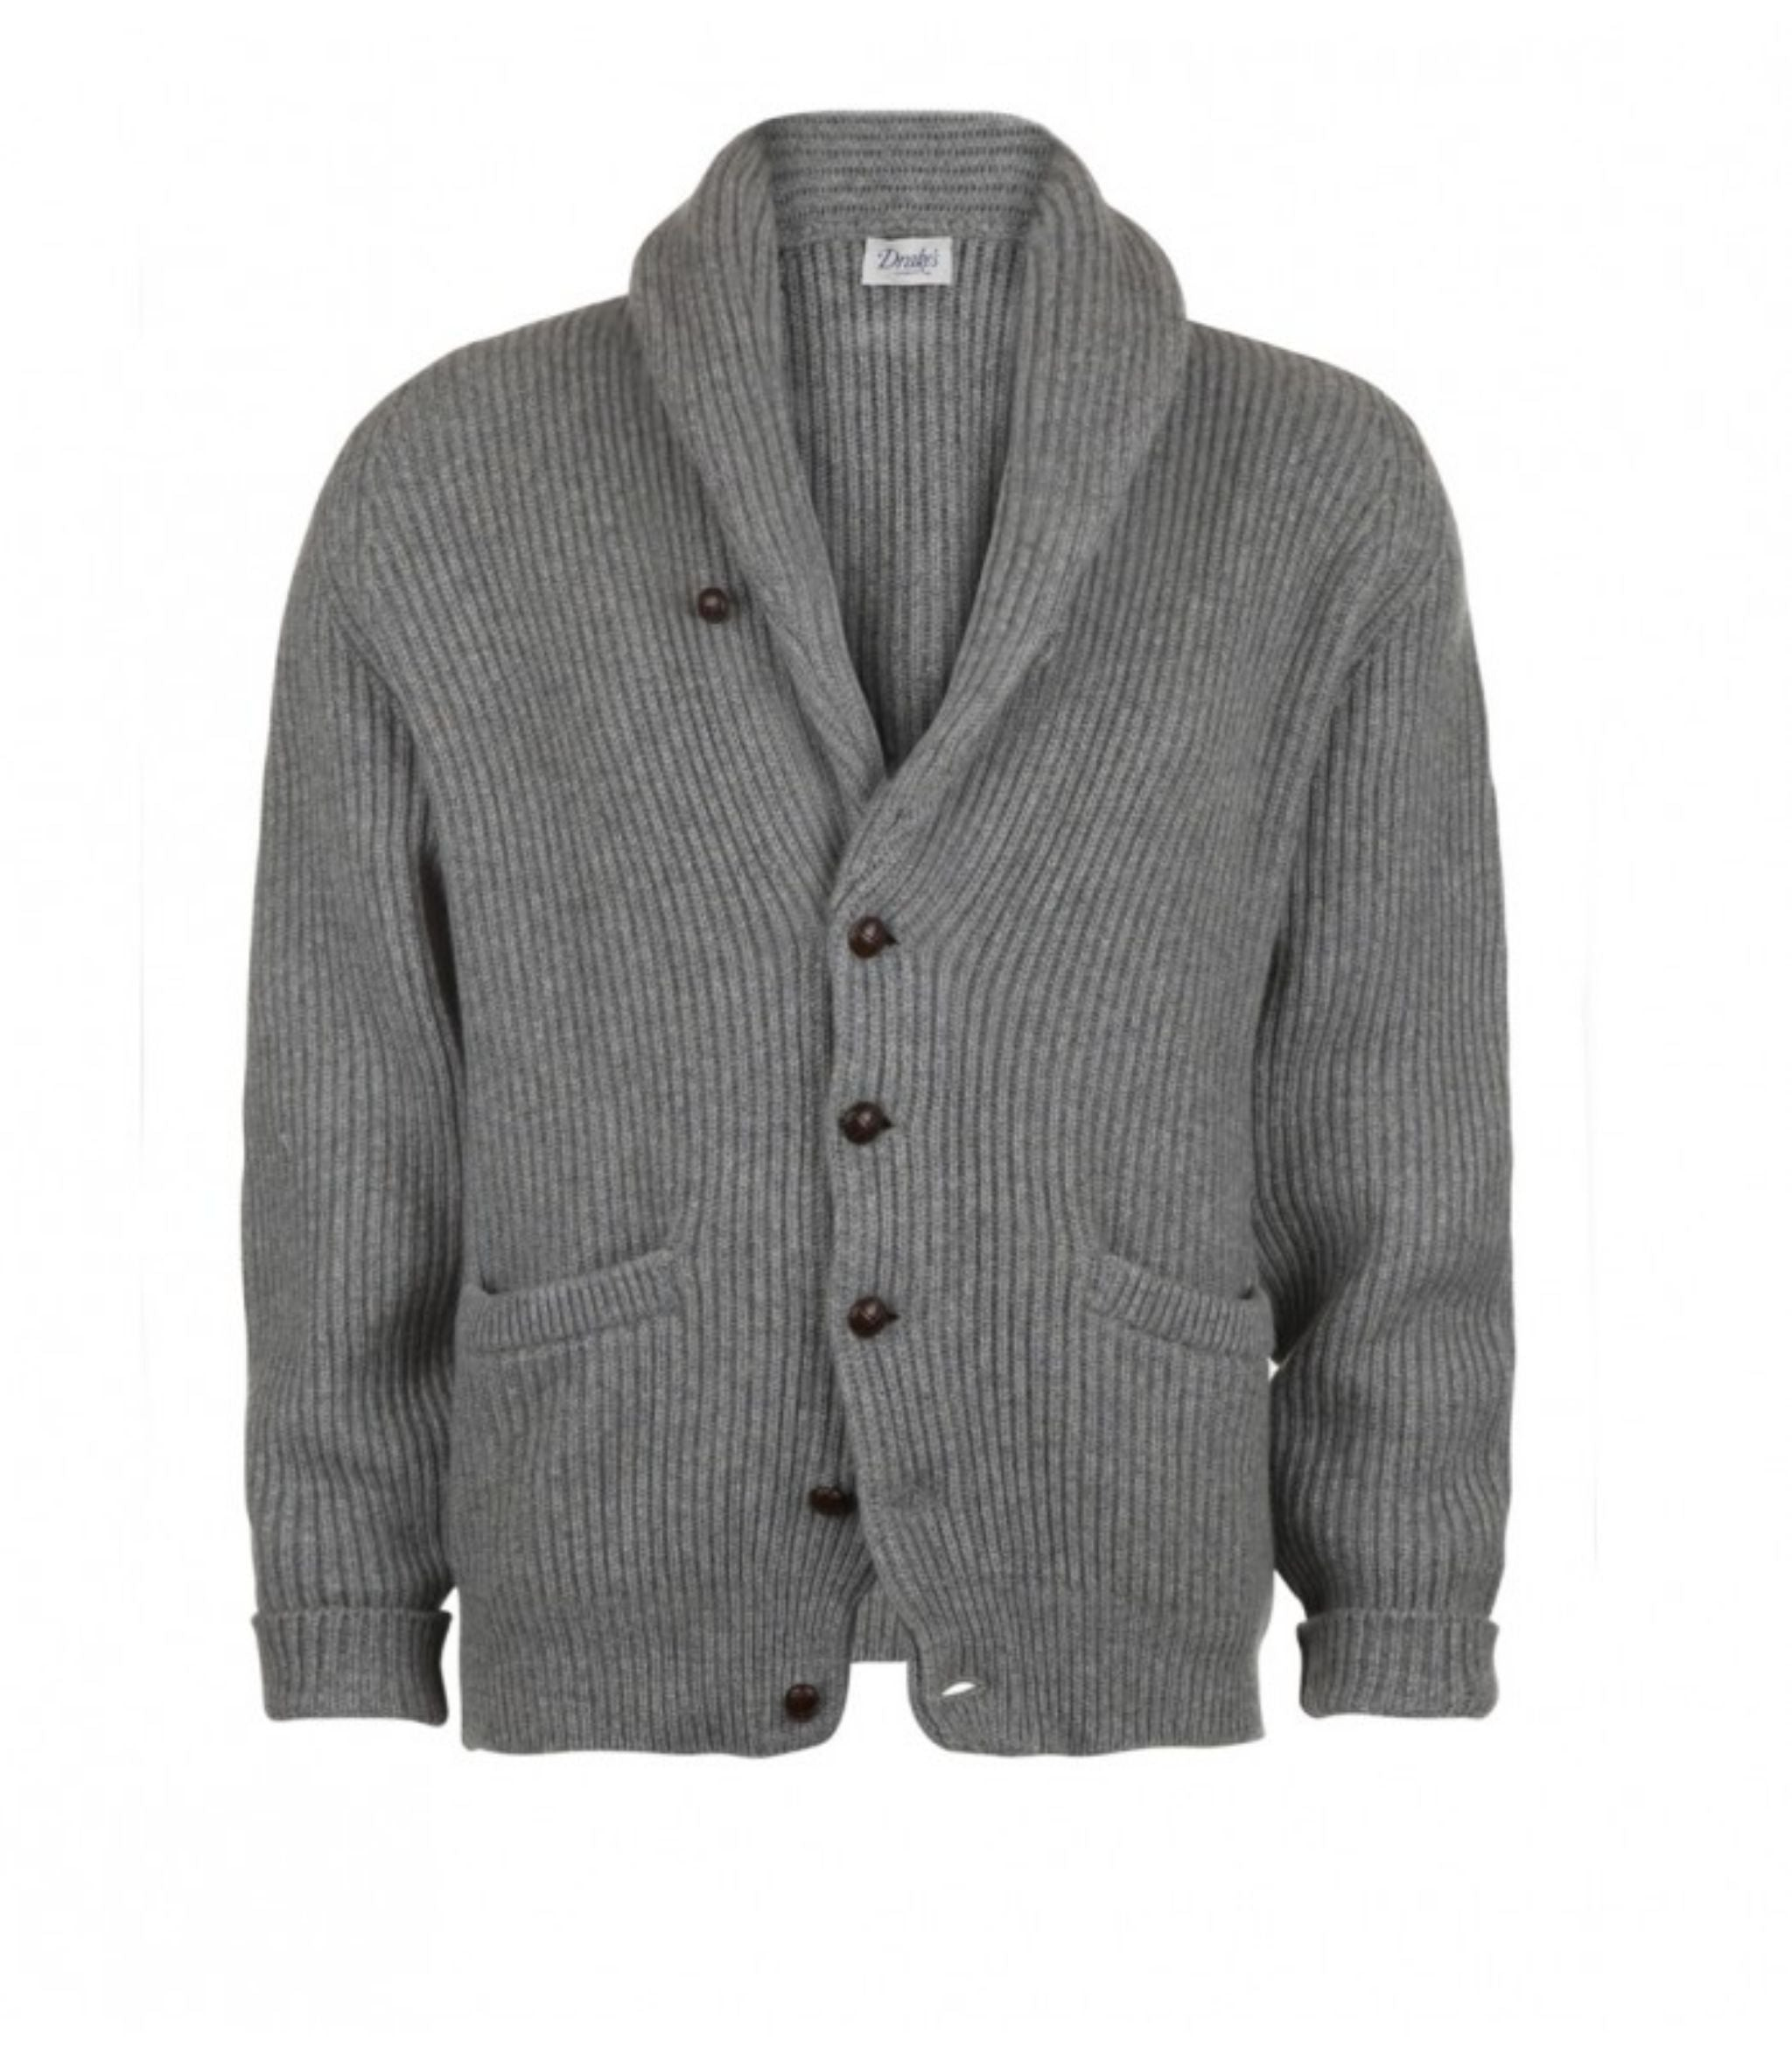 Gray cashmere shawl collar cardigan